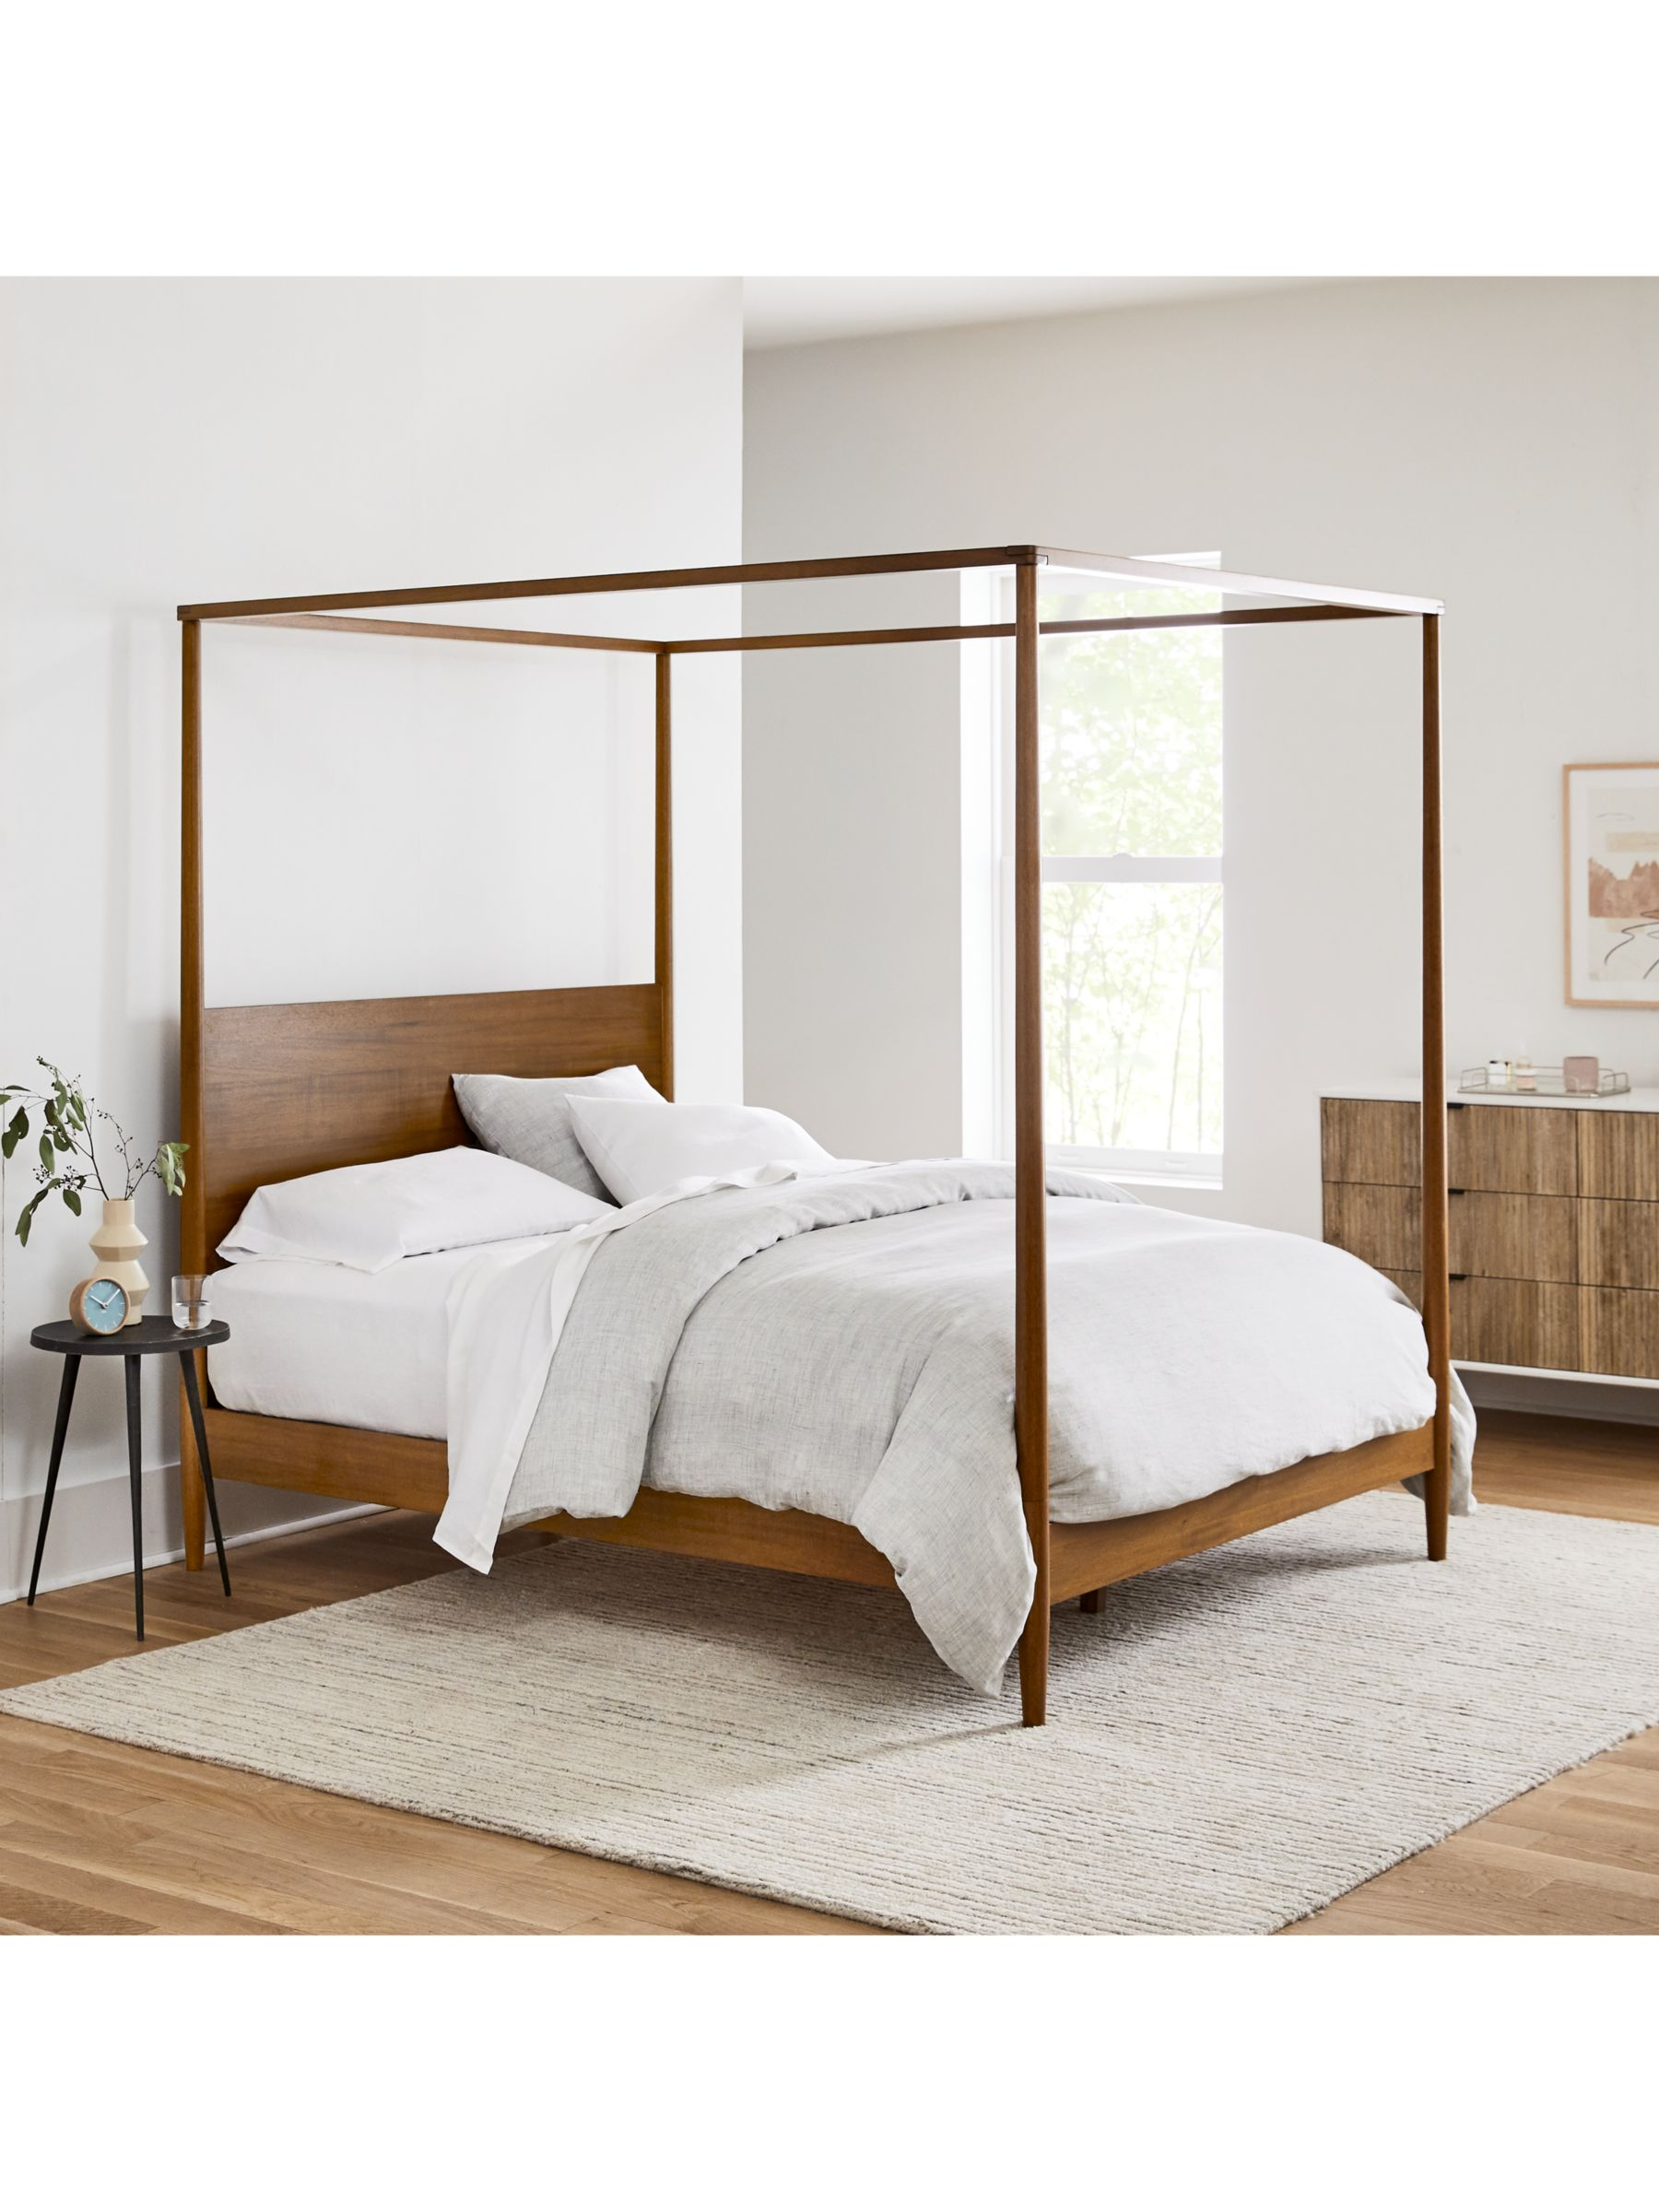 West Elm Mid Century Canopy Bed Frame King Size Fsc Certified Eucalyptus Acorn At John Lewis Partners